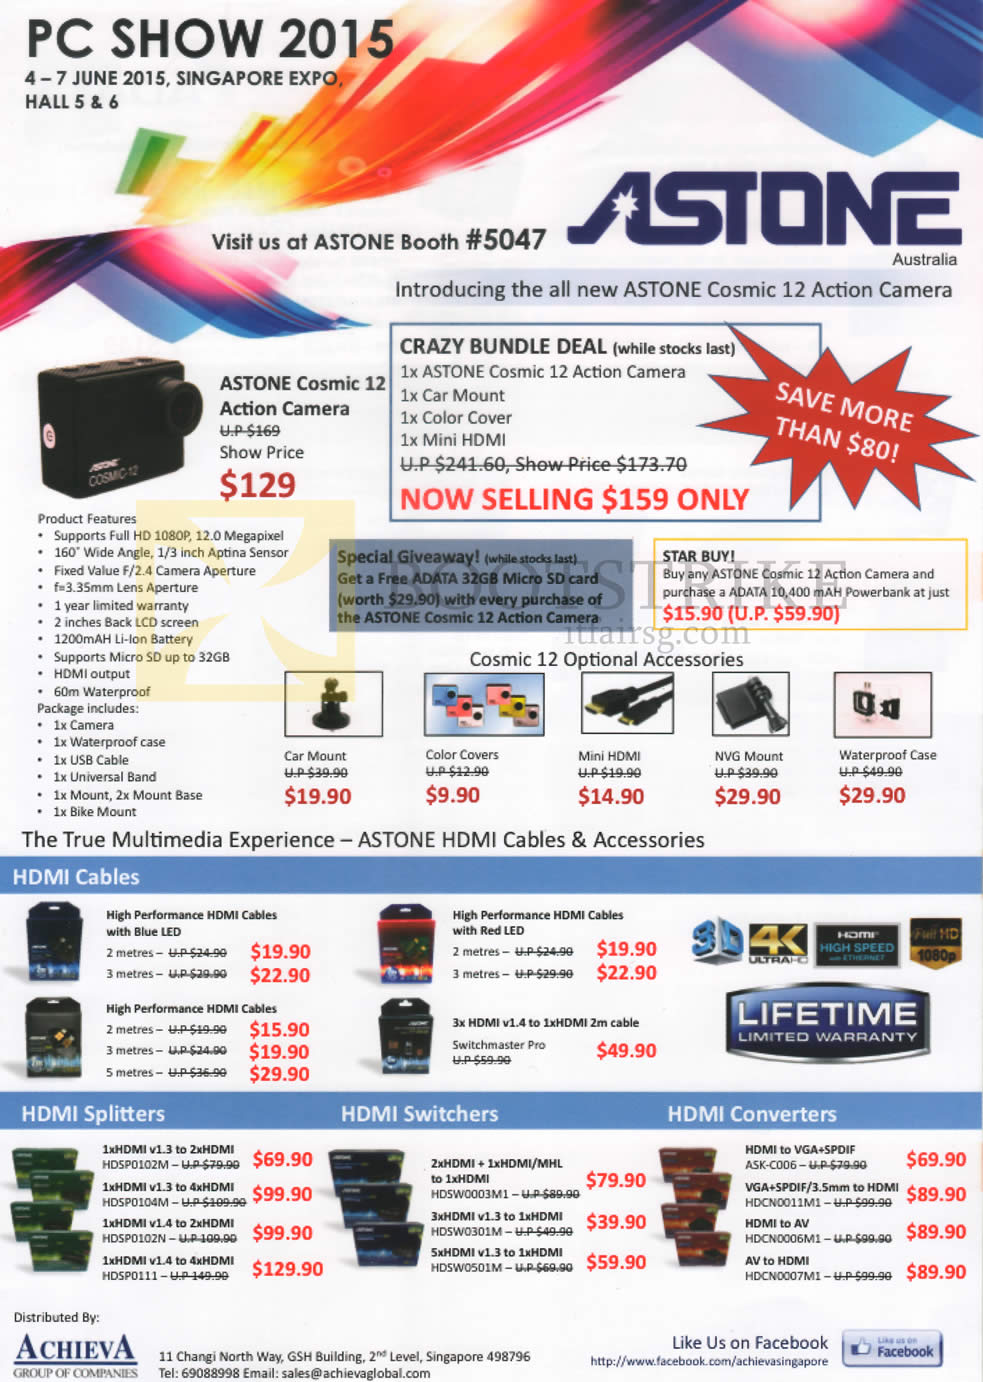 PC SHOW 2015 price list image brochure of Achieva Astone HDMI Cables, Accessories, HDMI Cables, Splitters, Switchers, Converters